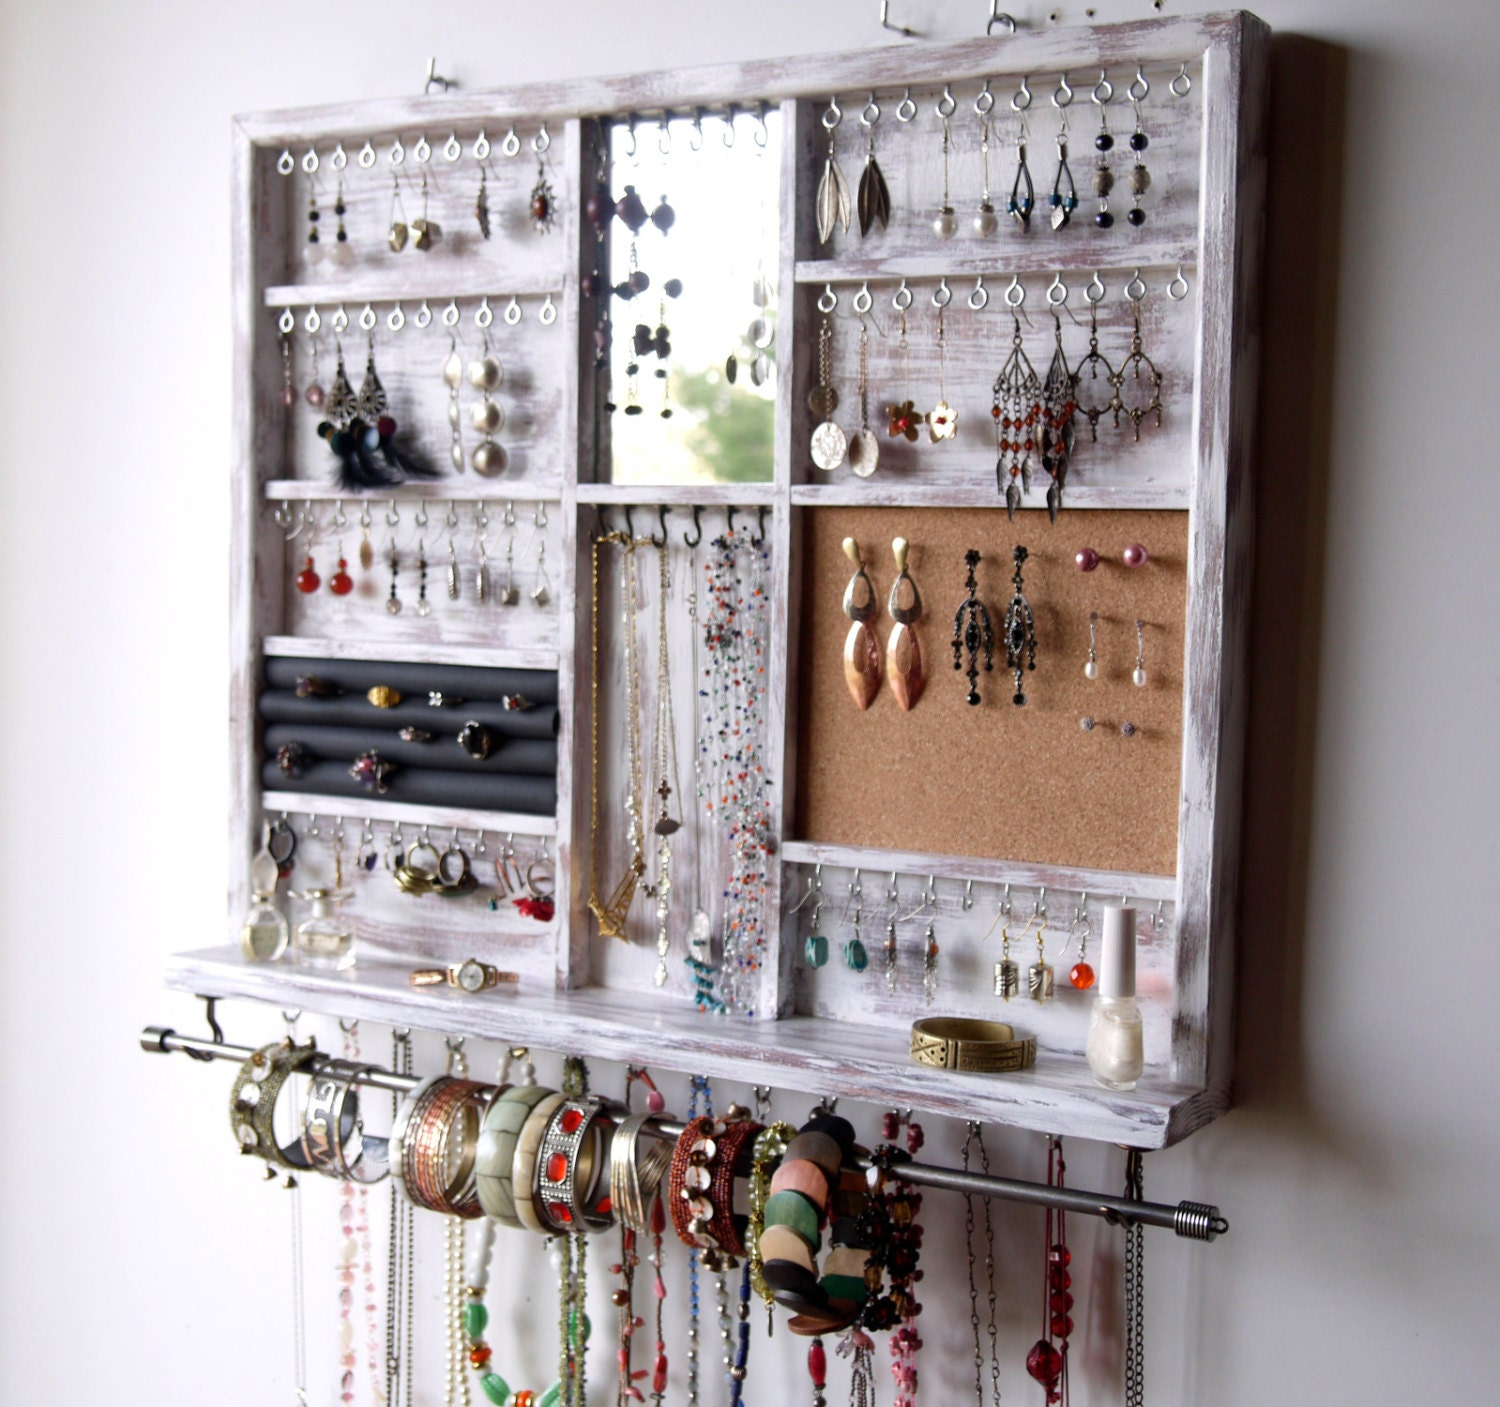 Top Jewelry holder. Large earrings display shelf. White jewelry RE06